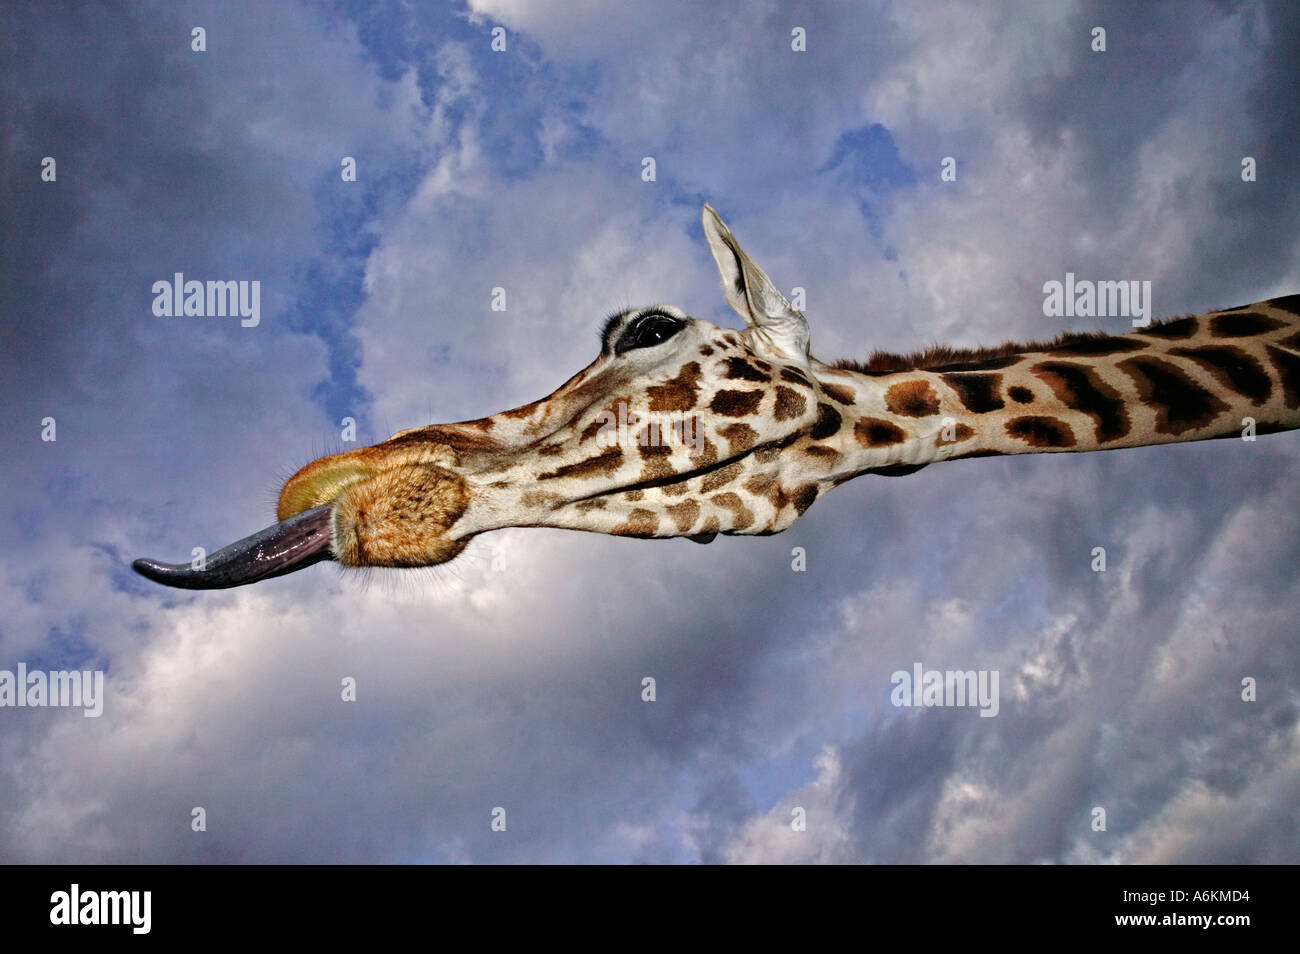 Rothschild Giraffe Giraffa camelopardalis rothschildi Portrait of adult and tongue extended with stormy sky in background Kenya - Stock Image